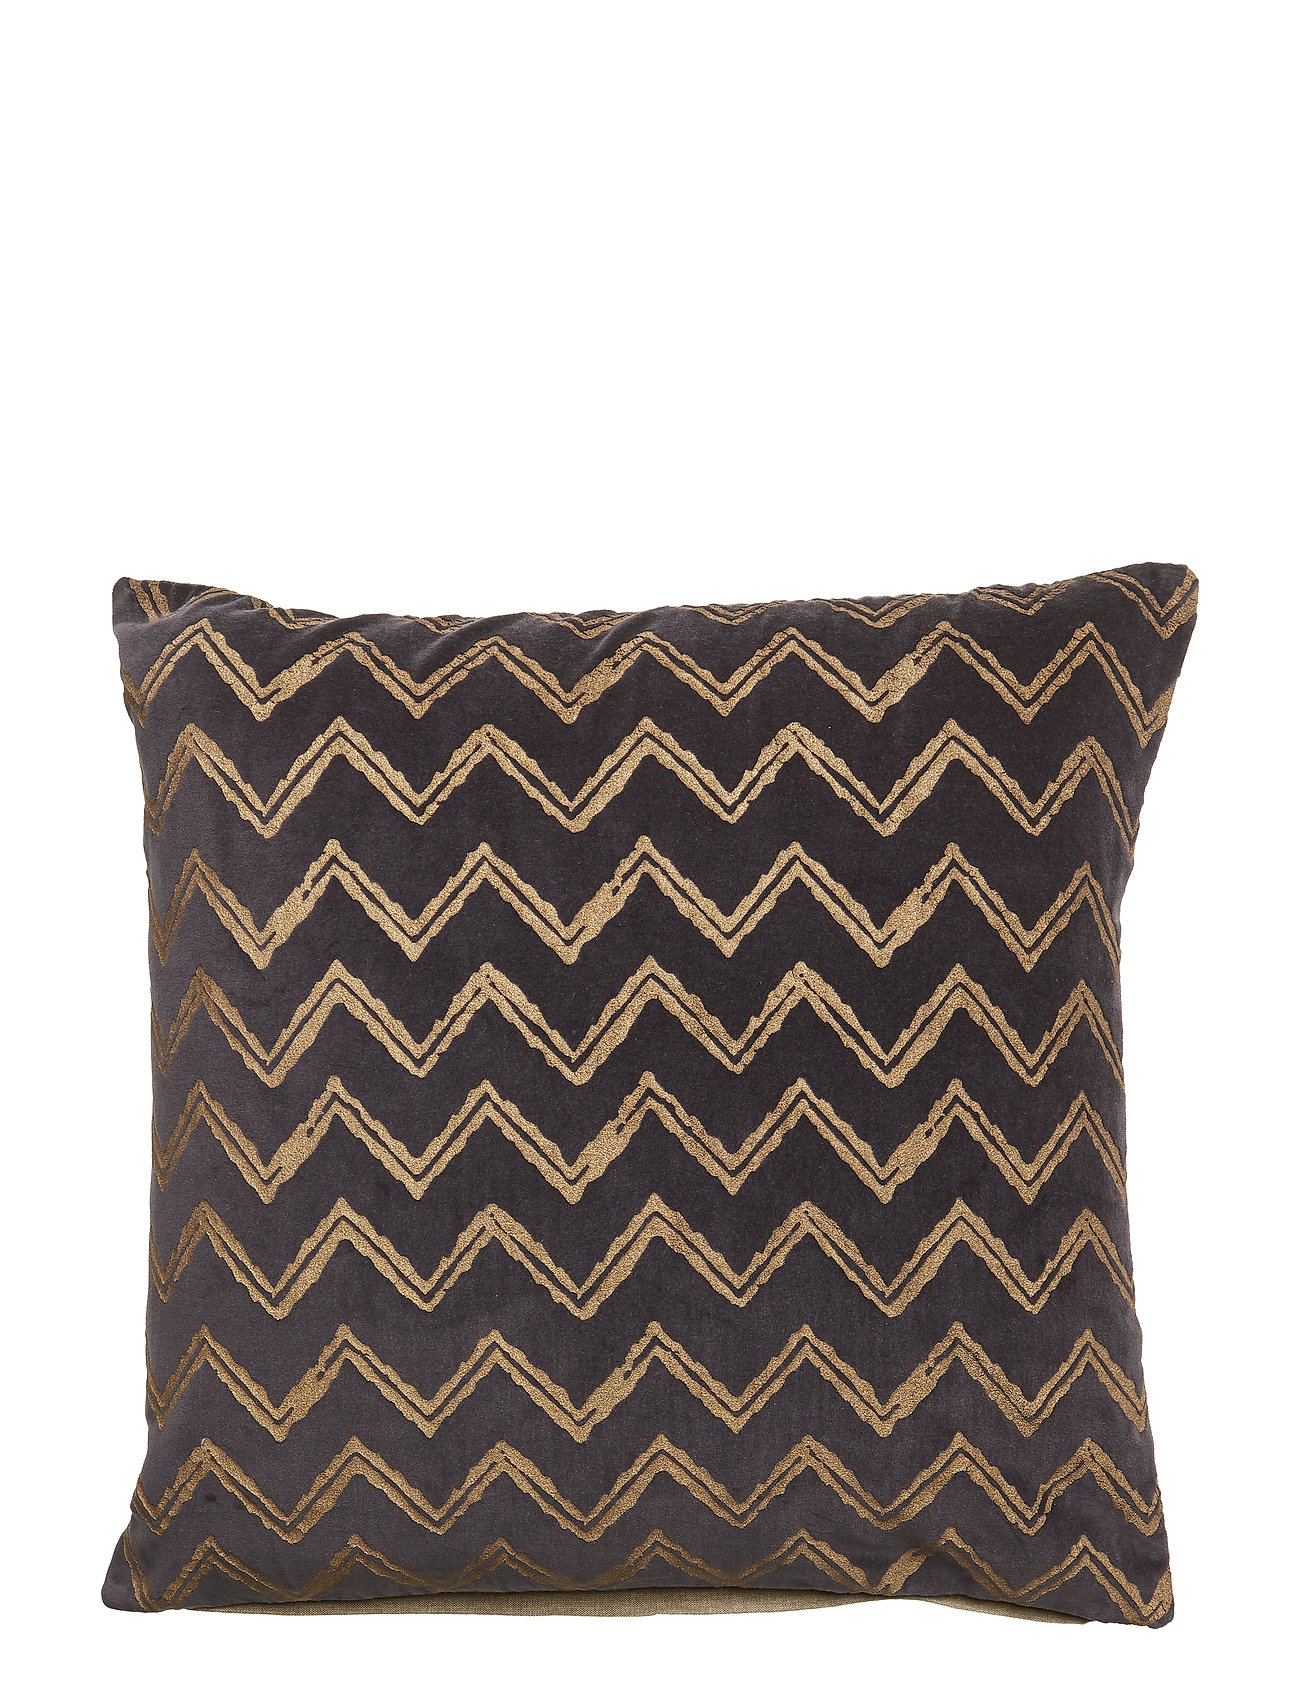 DAY Home Day ZigZag Cushion Cover - UNBLACK